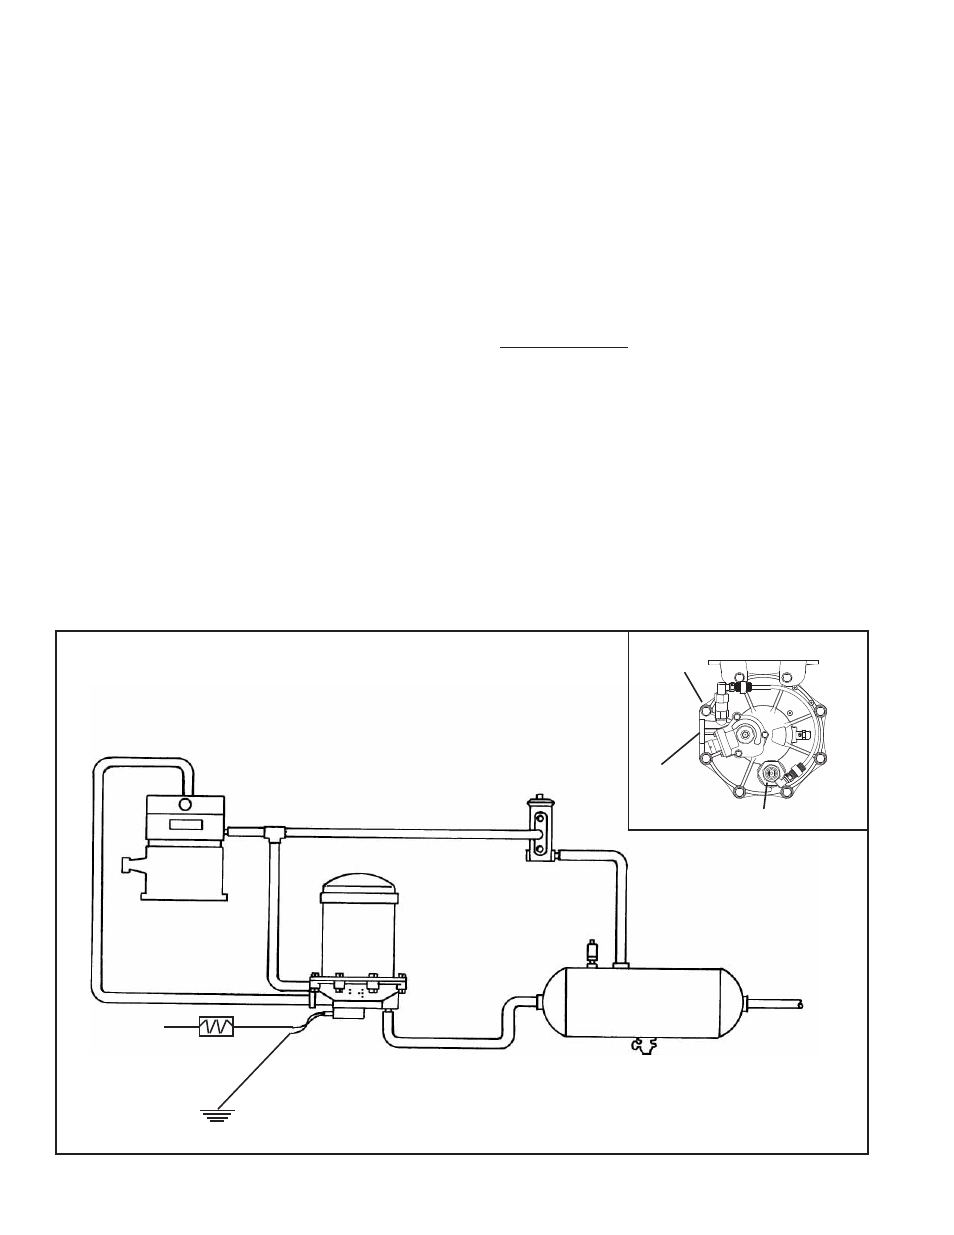 Retrofitting The Bendix Ad 9 Air Dryer Commercial Vehicle Compressor Wiring Systems And Ipc Dryers 4 11 User Manual Page 16 28